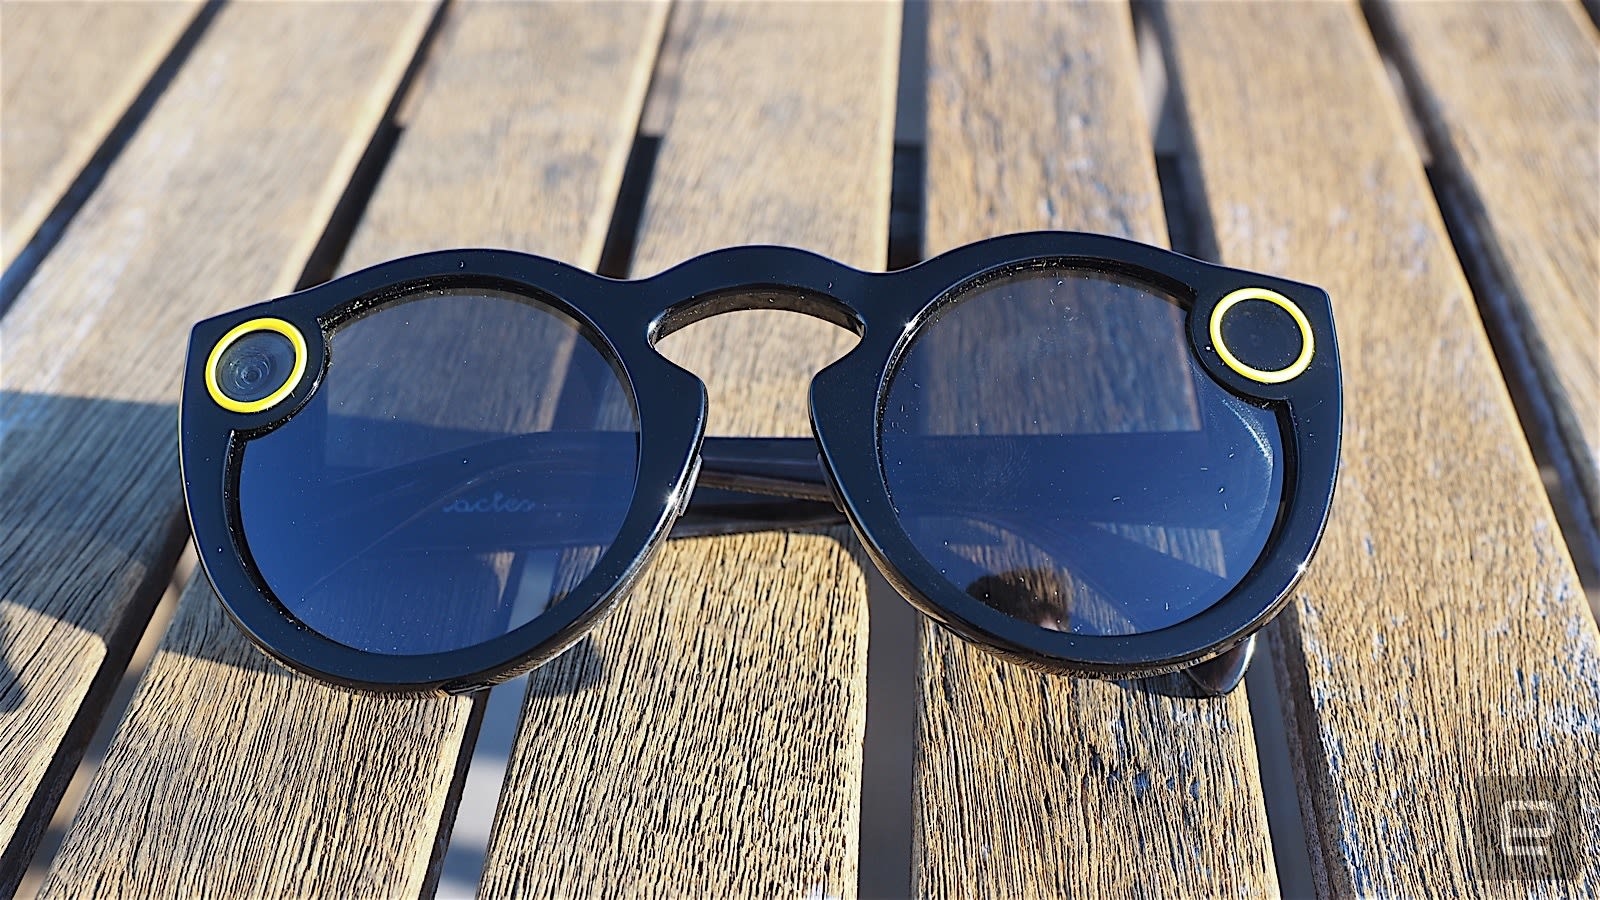 eea18aae079 Andrew Tarantola Engadget. Snap s camera-equipped Spectacles ...